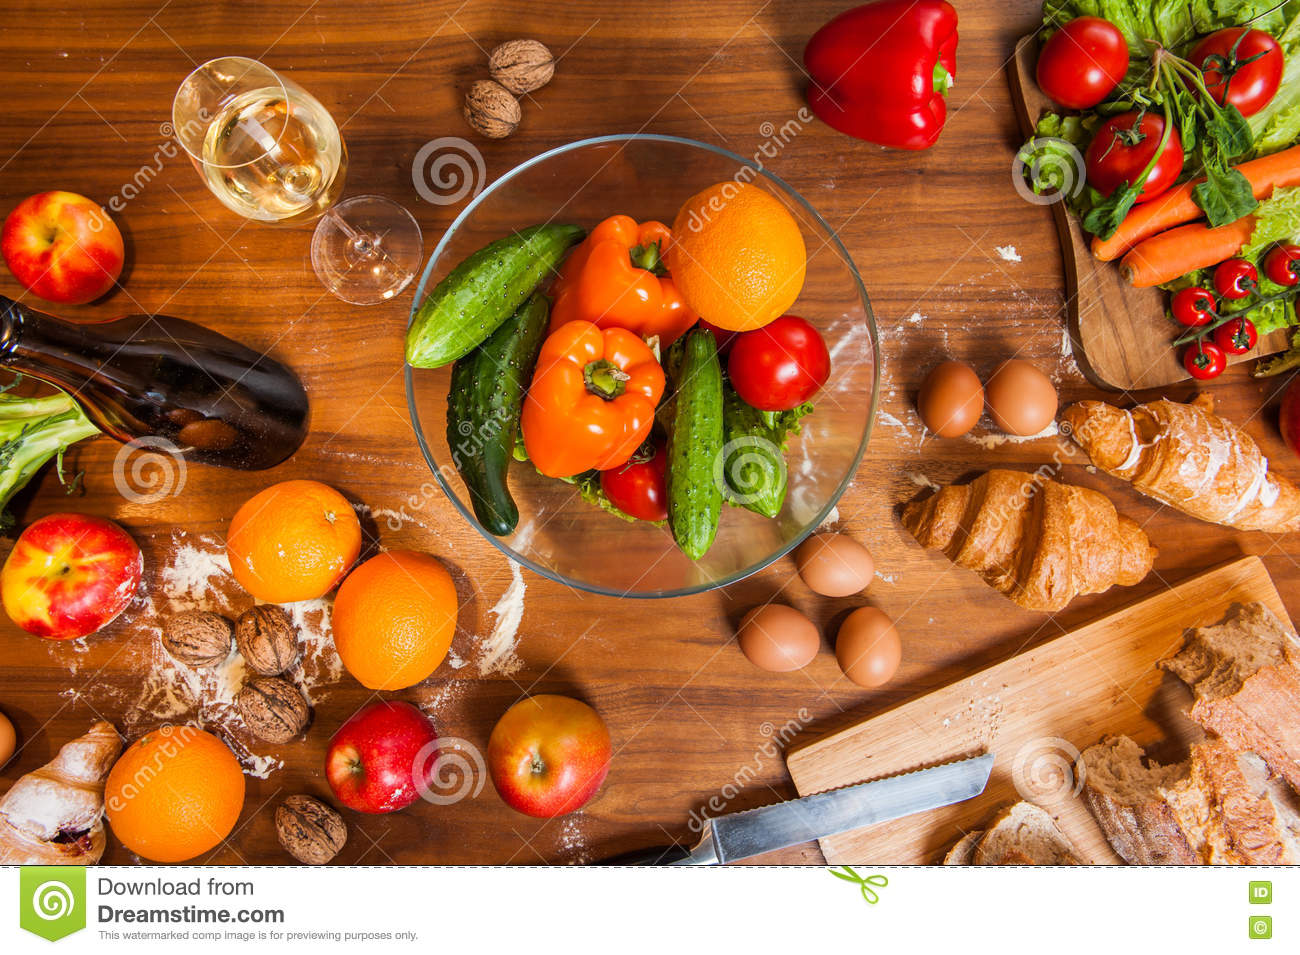 Wooden Food Table ~ Topview of fruits and vegetables on wooden kitchen table